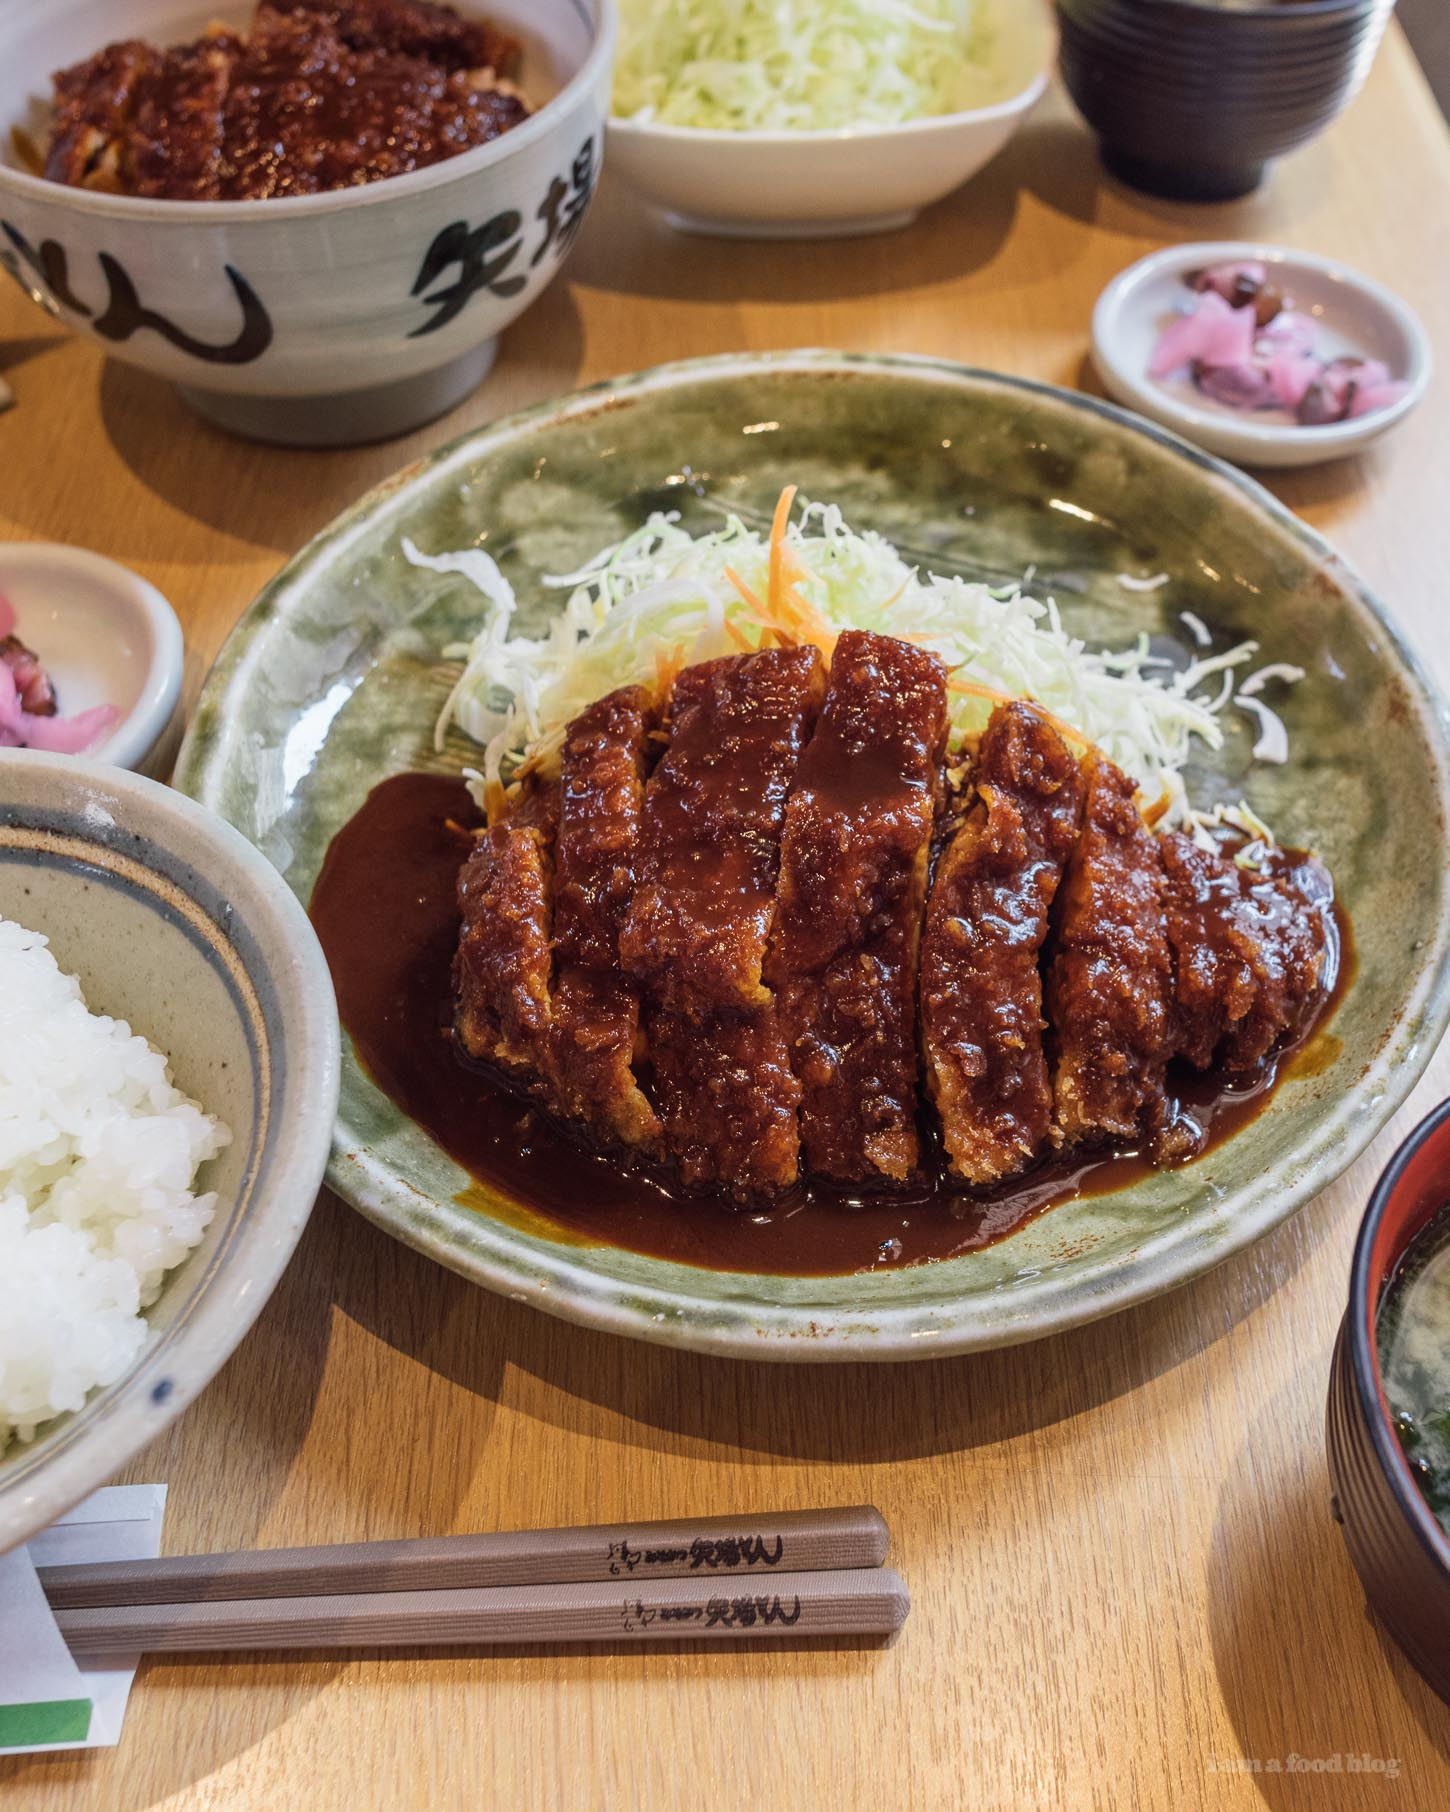 "<img src=""https://iamafoodblog.com/wp-content/uploads/2019/05/IAM_1132.jpg"" alt=""24 Hours in Nagoya, Japan 